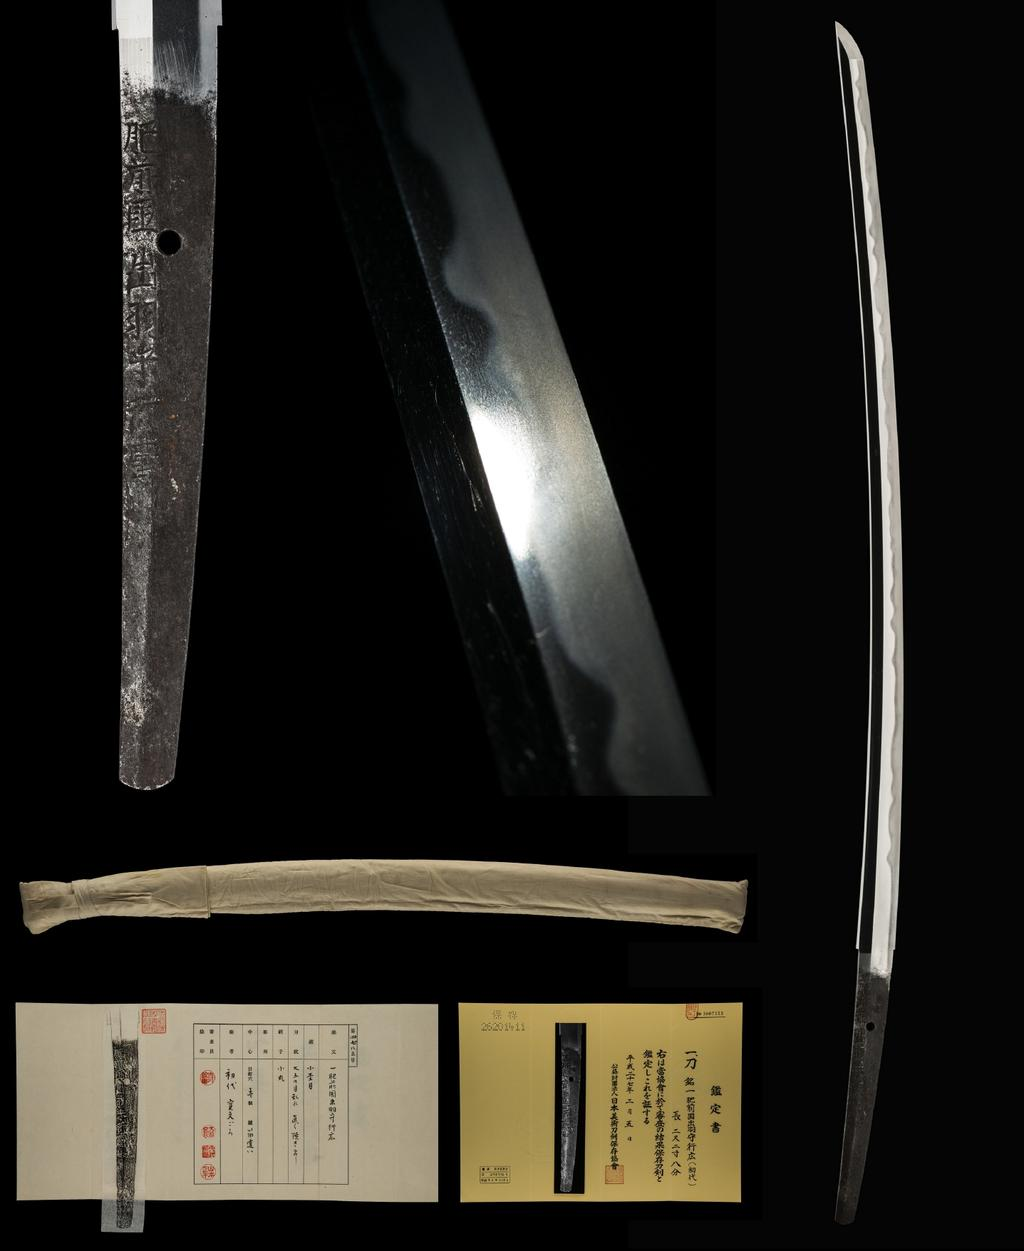 A few very minor flaws to the body allow it to be offered at a very reasonable price for a genuine original length Shodai Yukihiro katana.